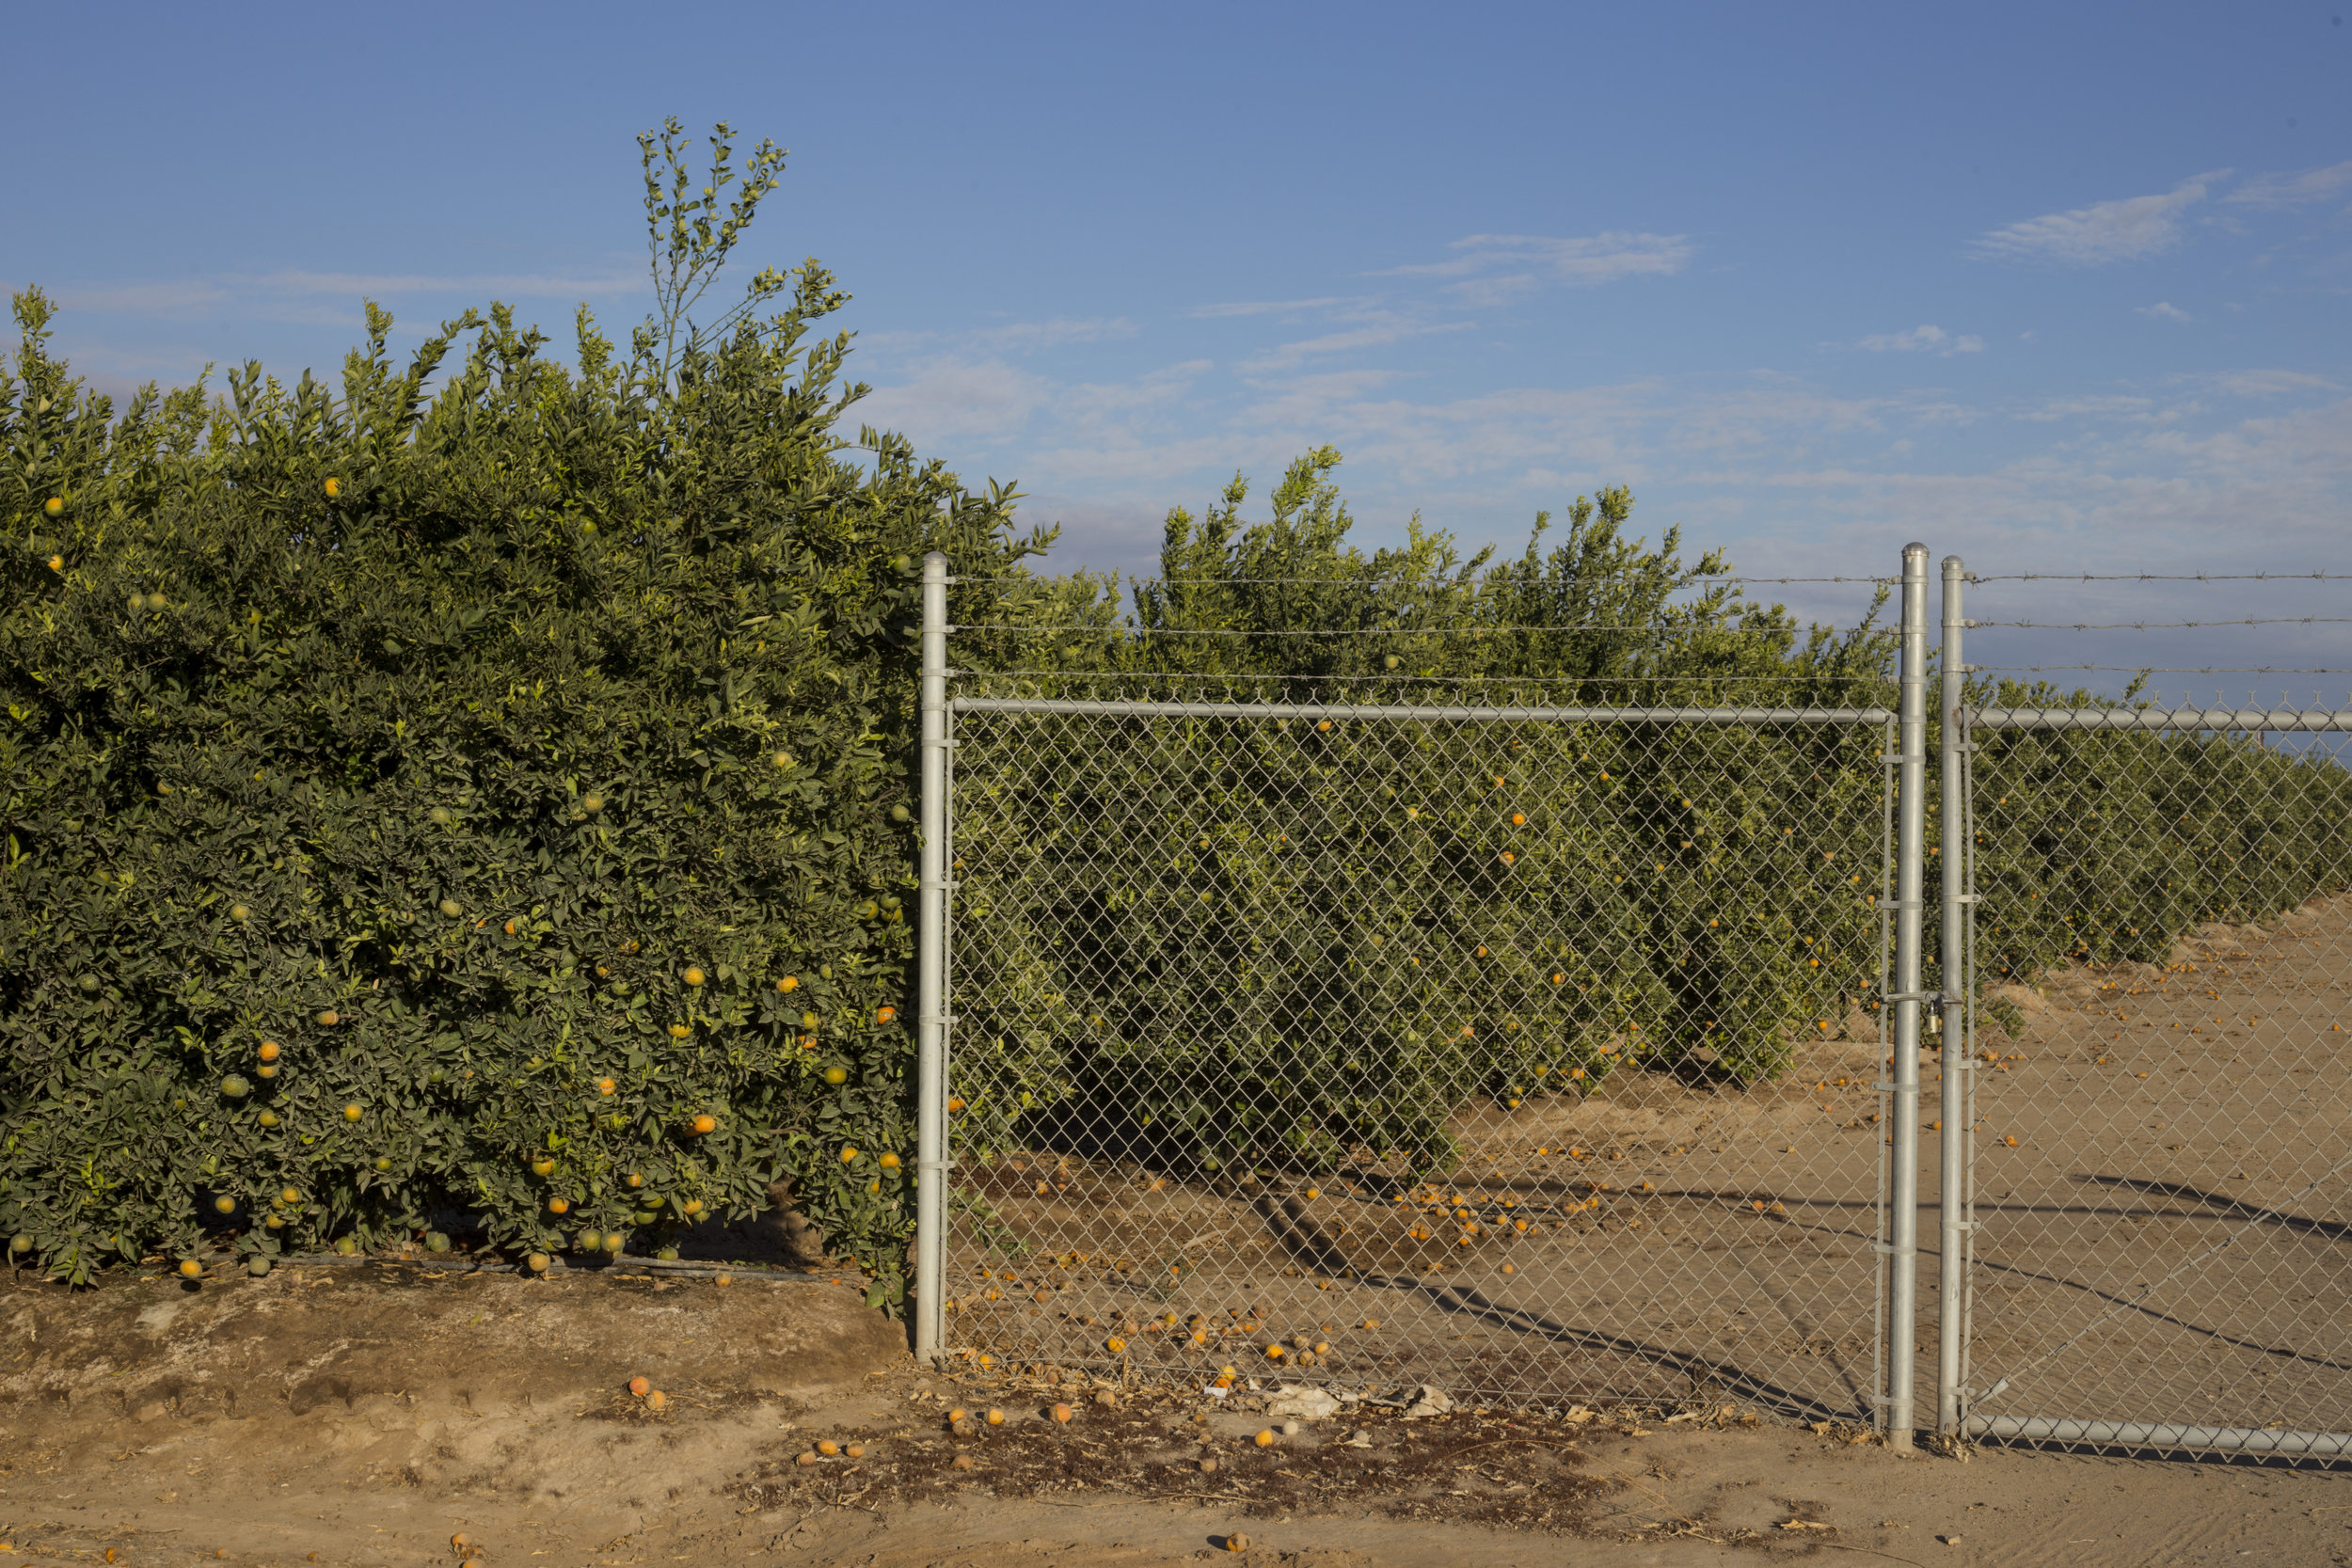 A barbed wire fence partially blocks a pathway in front of a massive plot of lemon trees in Fresno, Calif., on Friday, November 10, 2017.